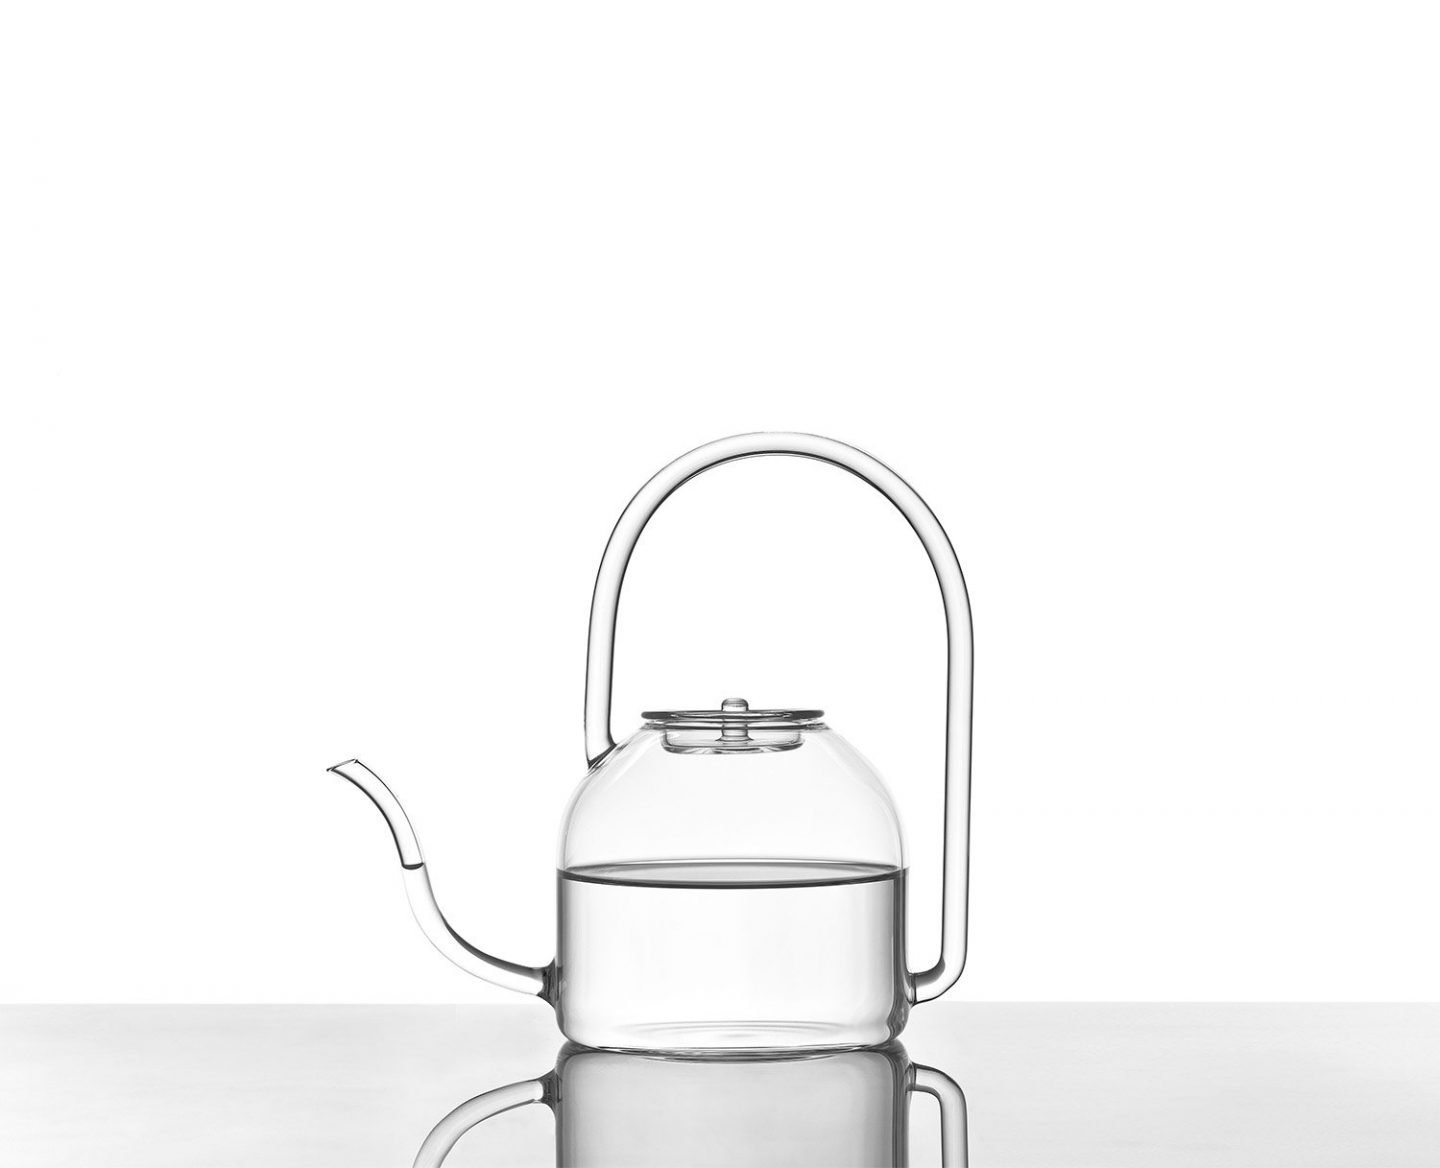 IGNANT-Design-Phil-Glass-Drip-Coffee-Maker-Set-1